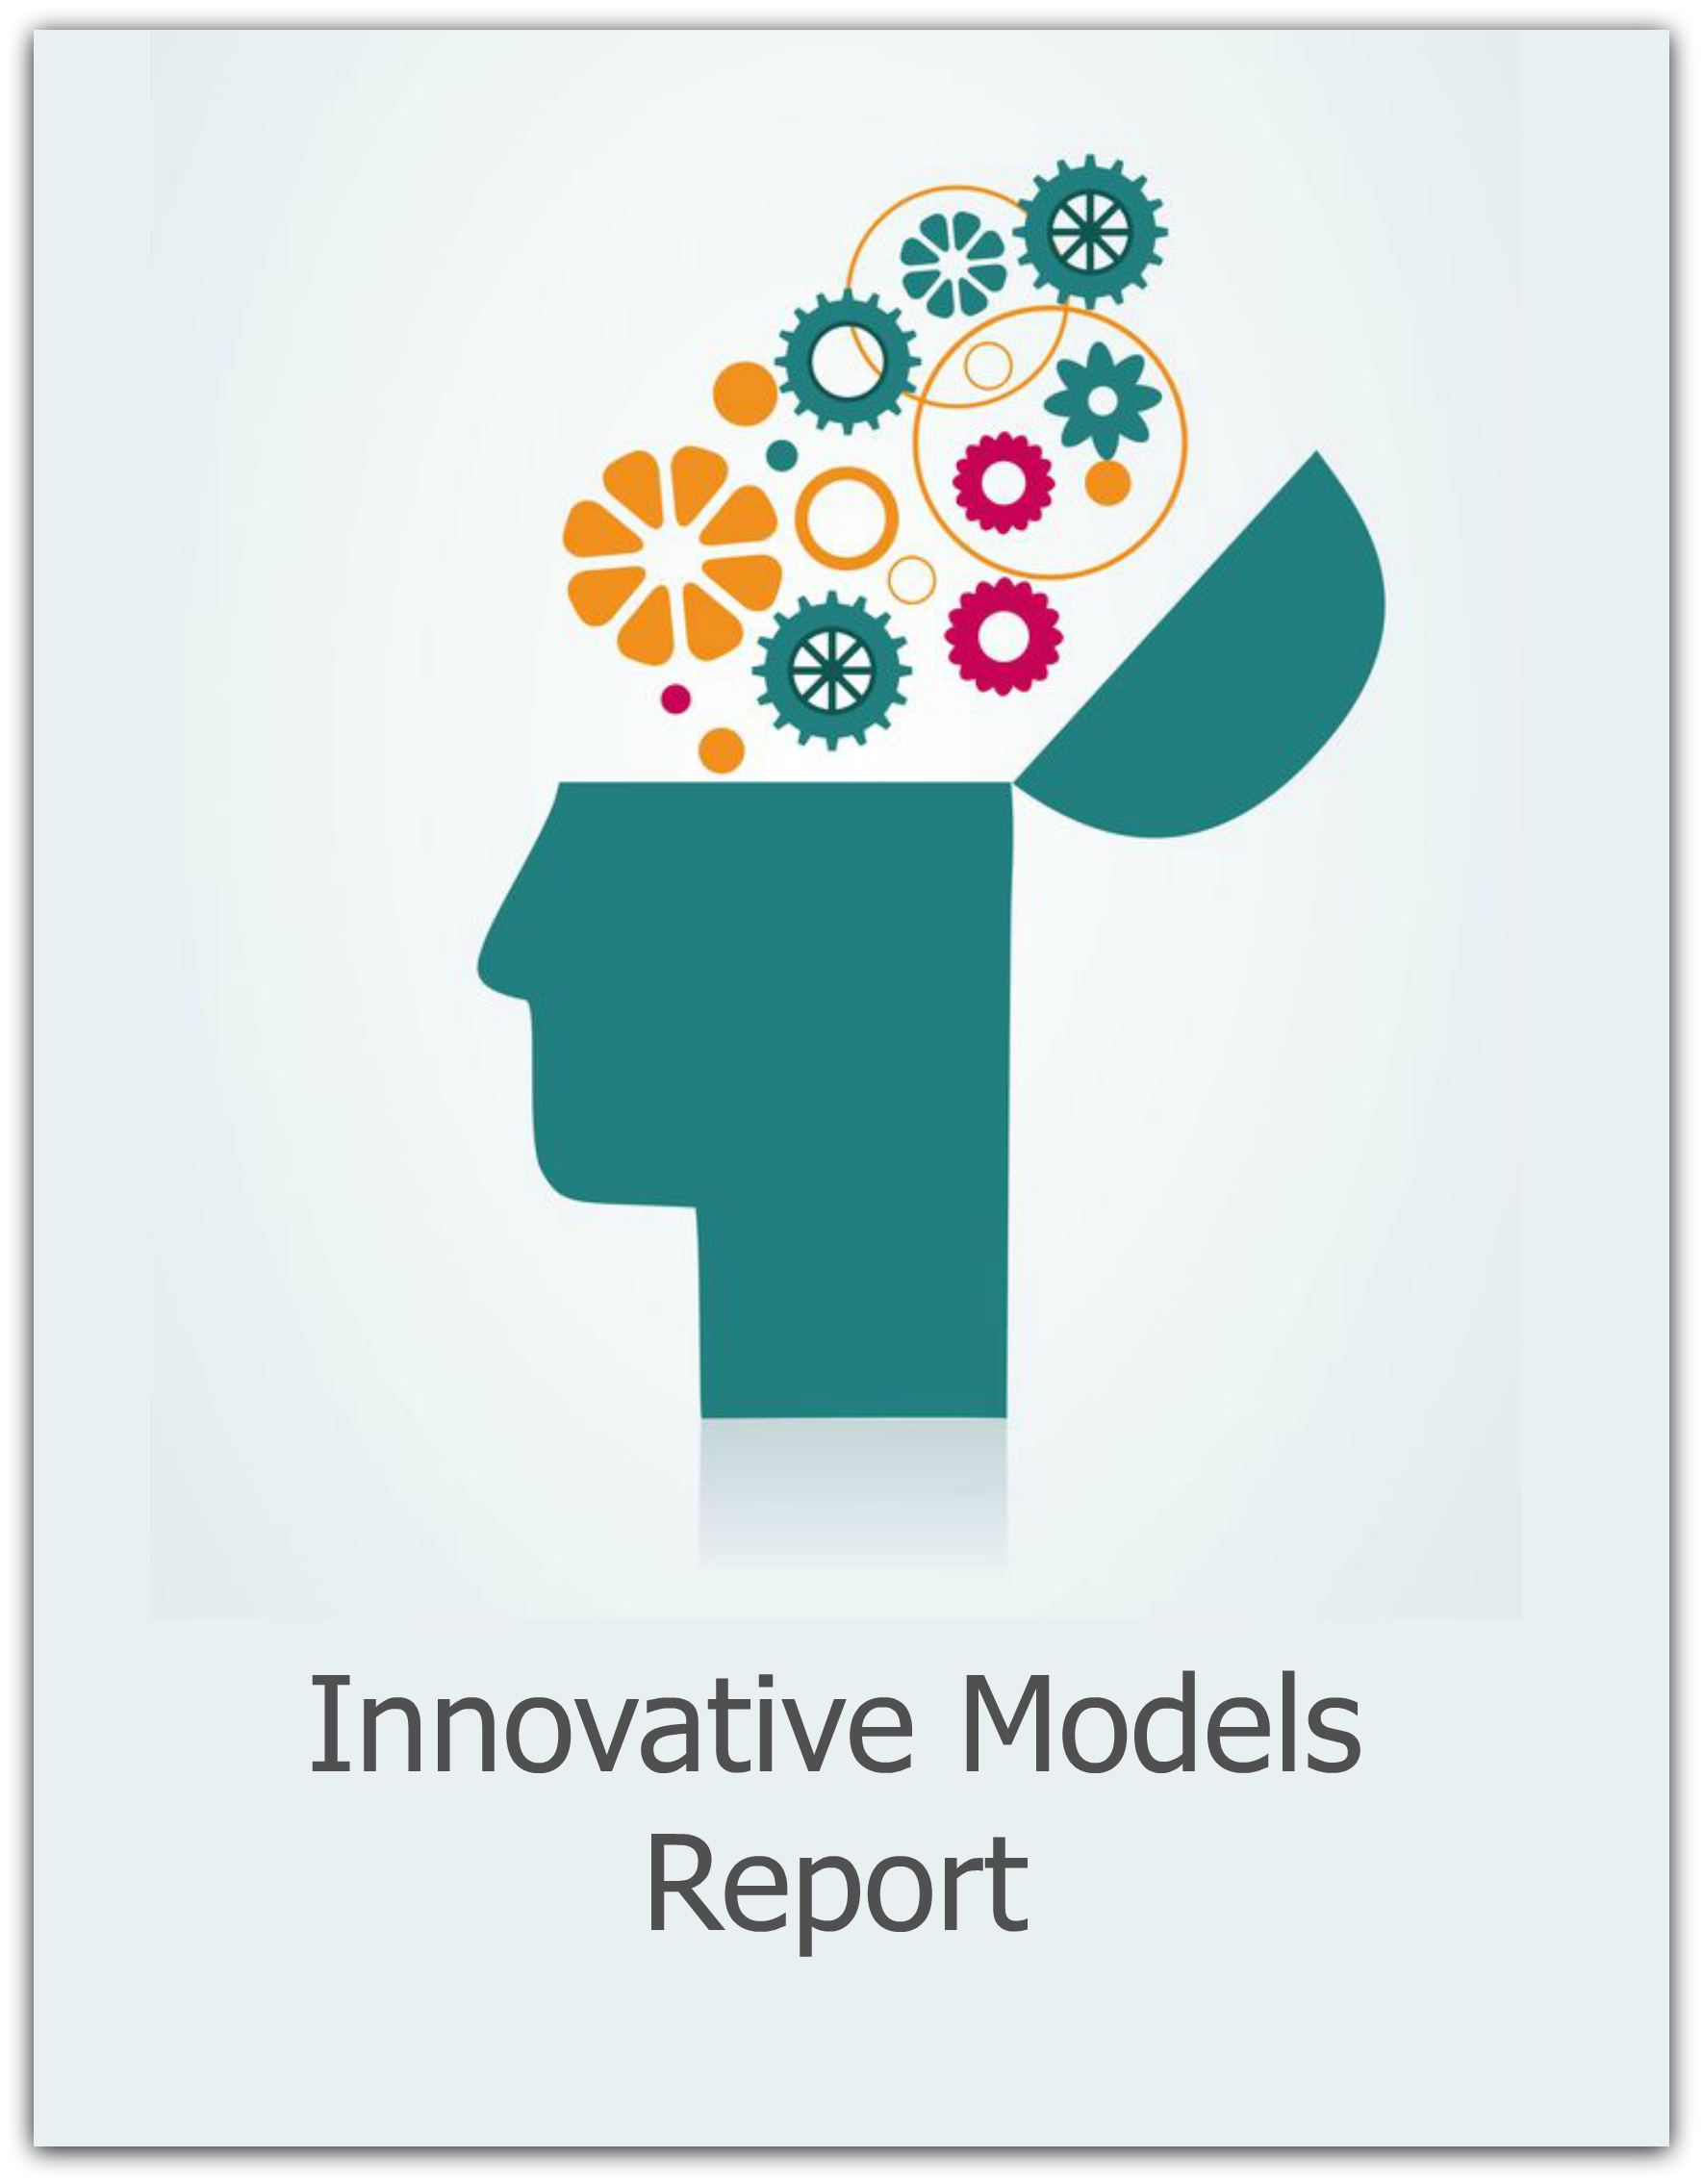 Innovative Models report